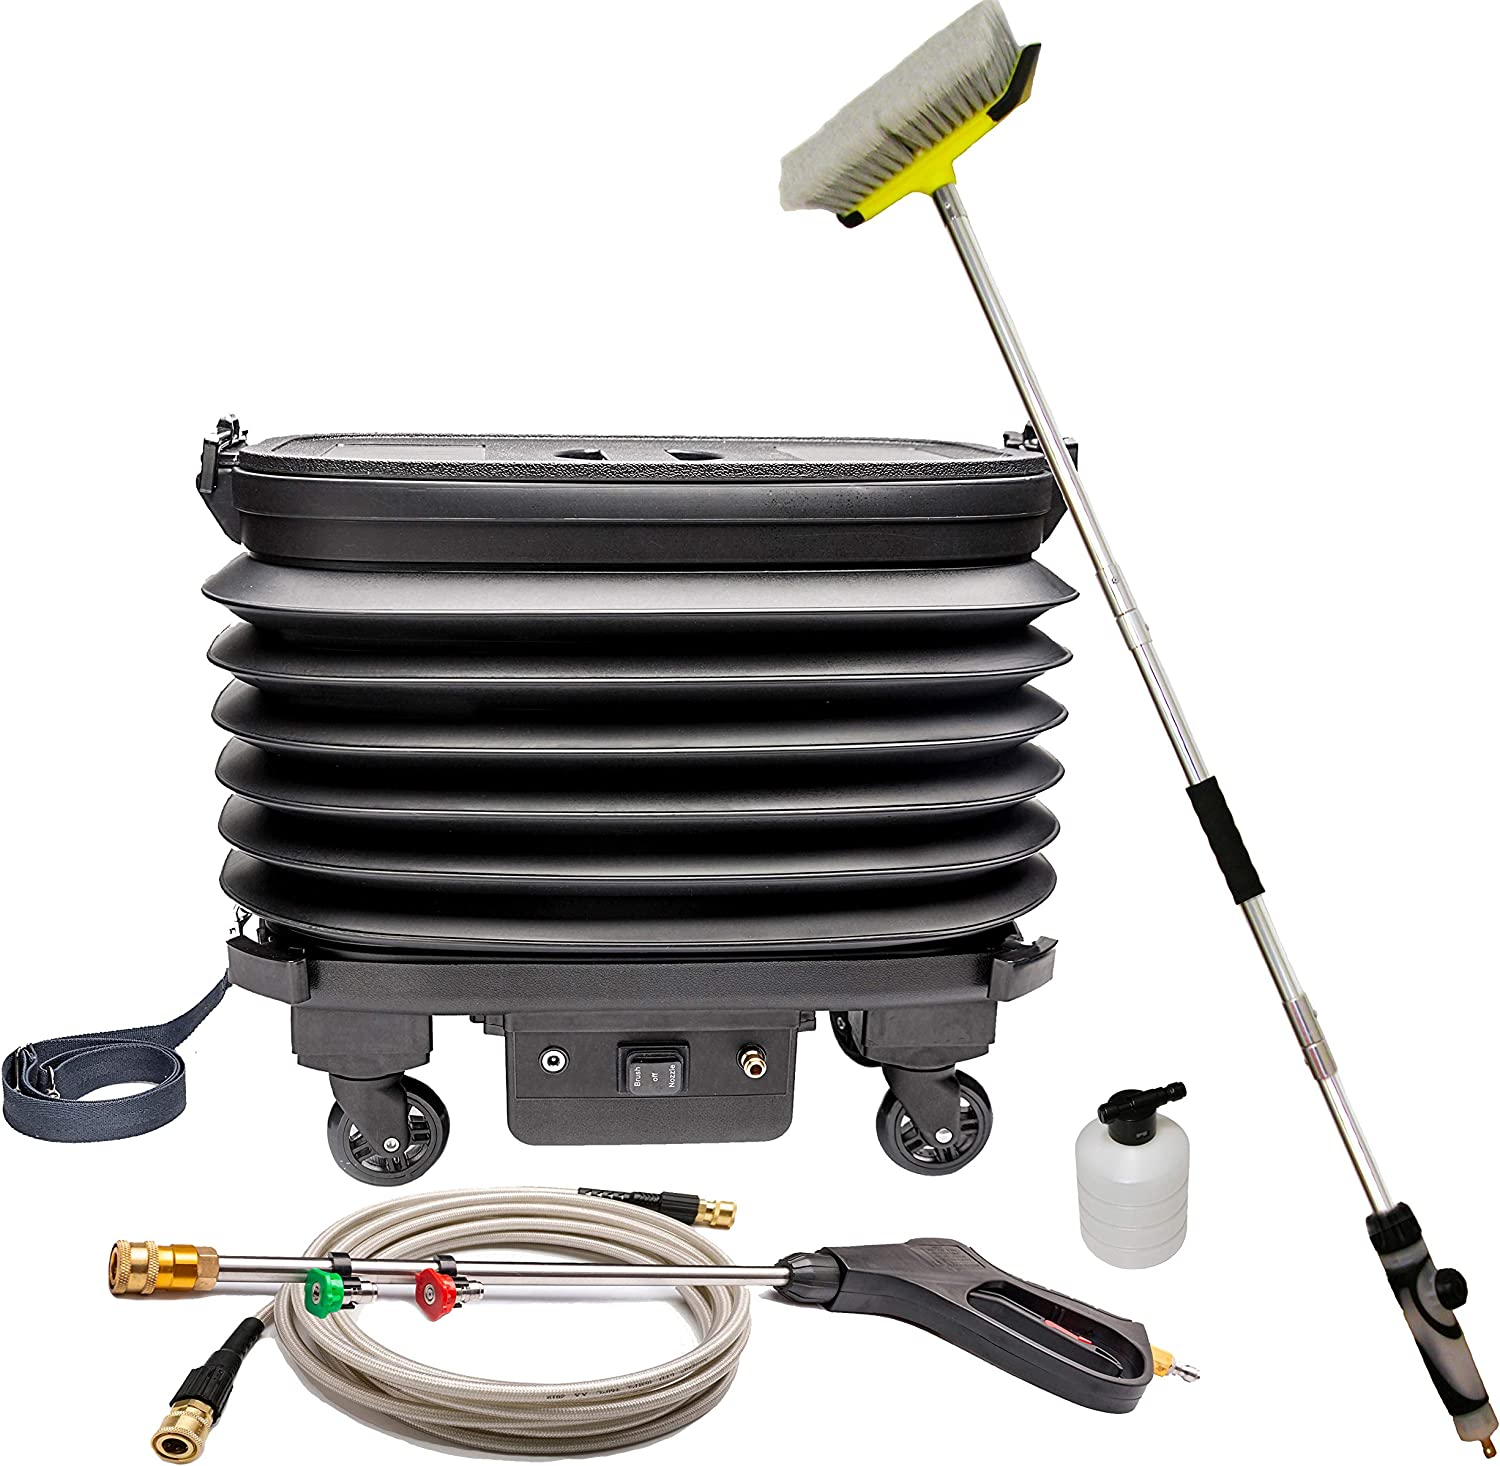 Caraid Portable and Foldable Pressure Washer with Built-in Rechargeable Battery, Car Washer with Water Tank